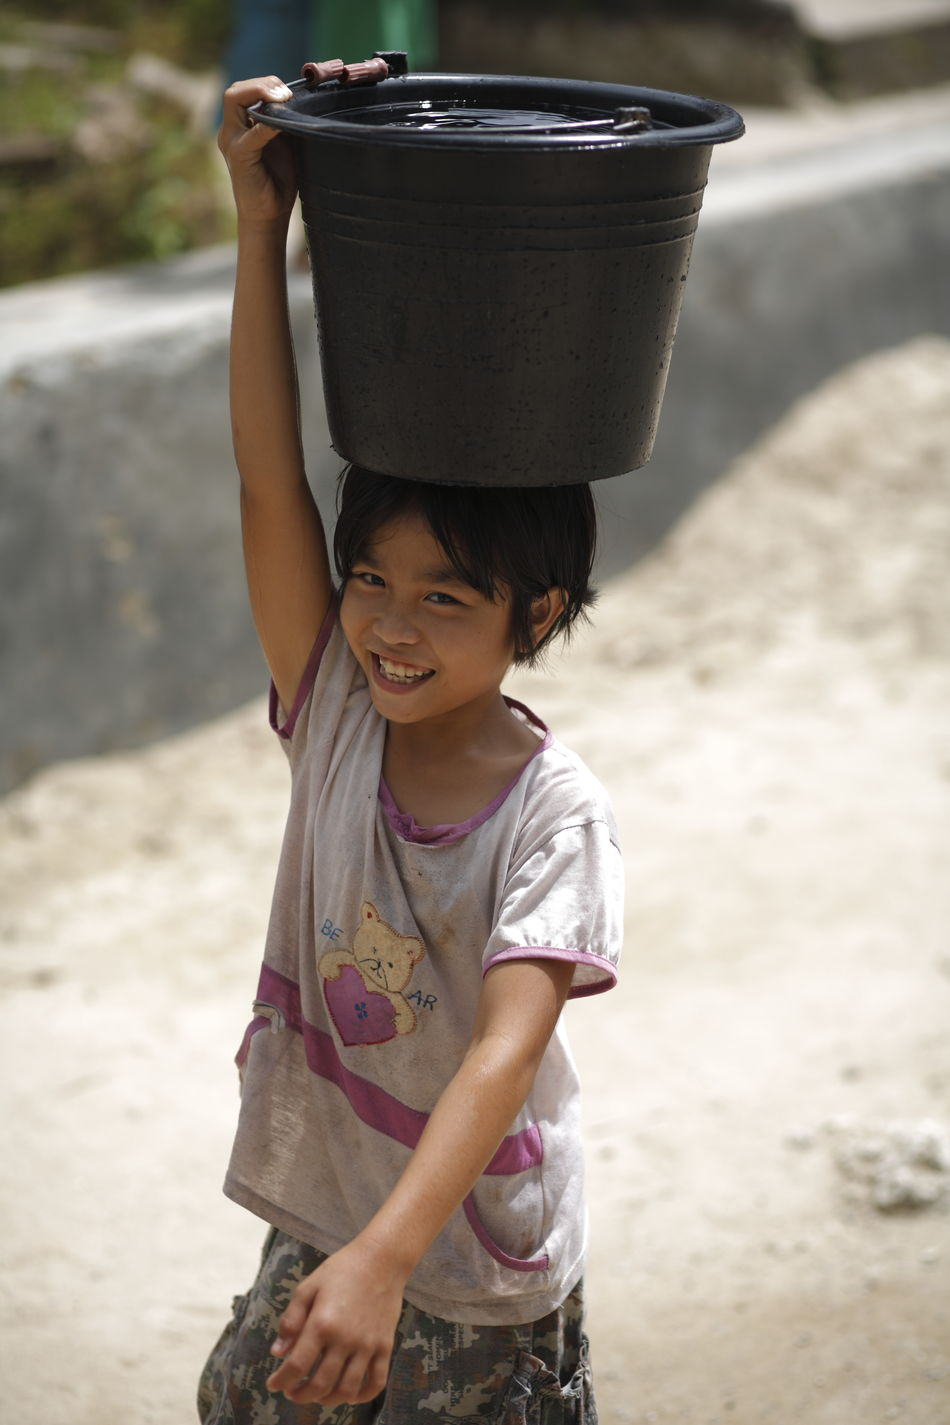 Uniqueness Real People Child Worker Carrying Water  Traditional Culture Childhood Happiness Child Smiling Nias Island INDONESIA Miles Away